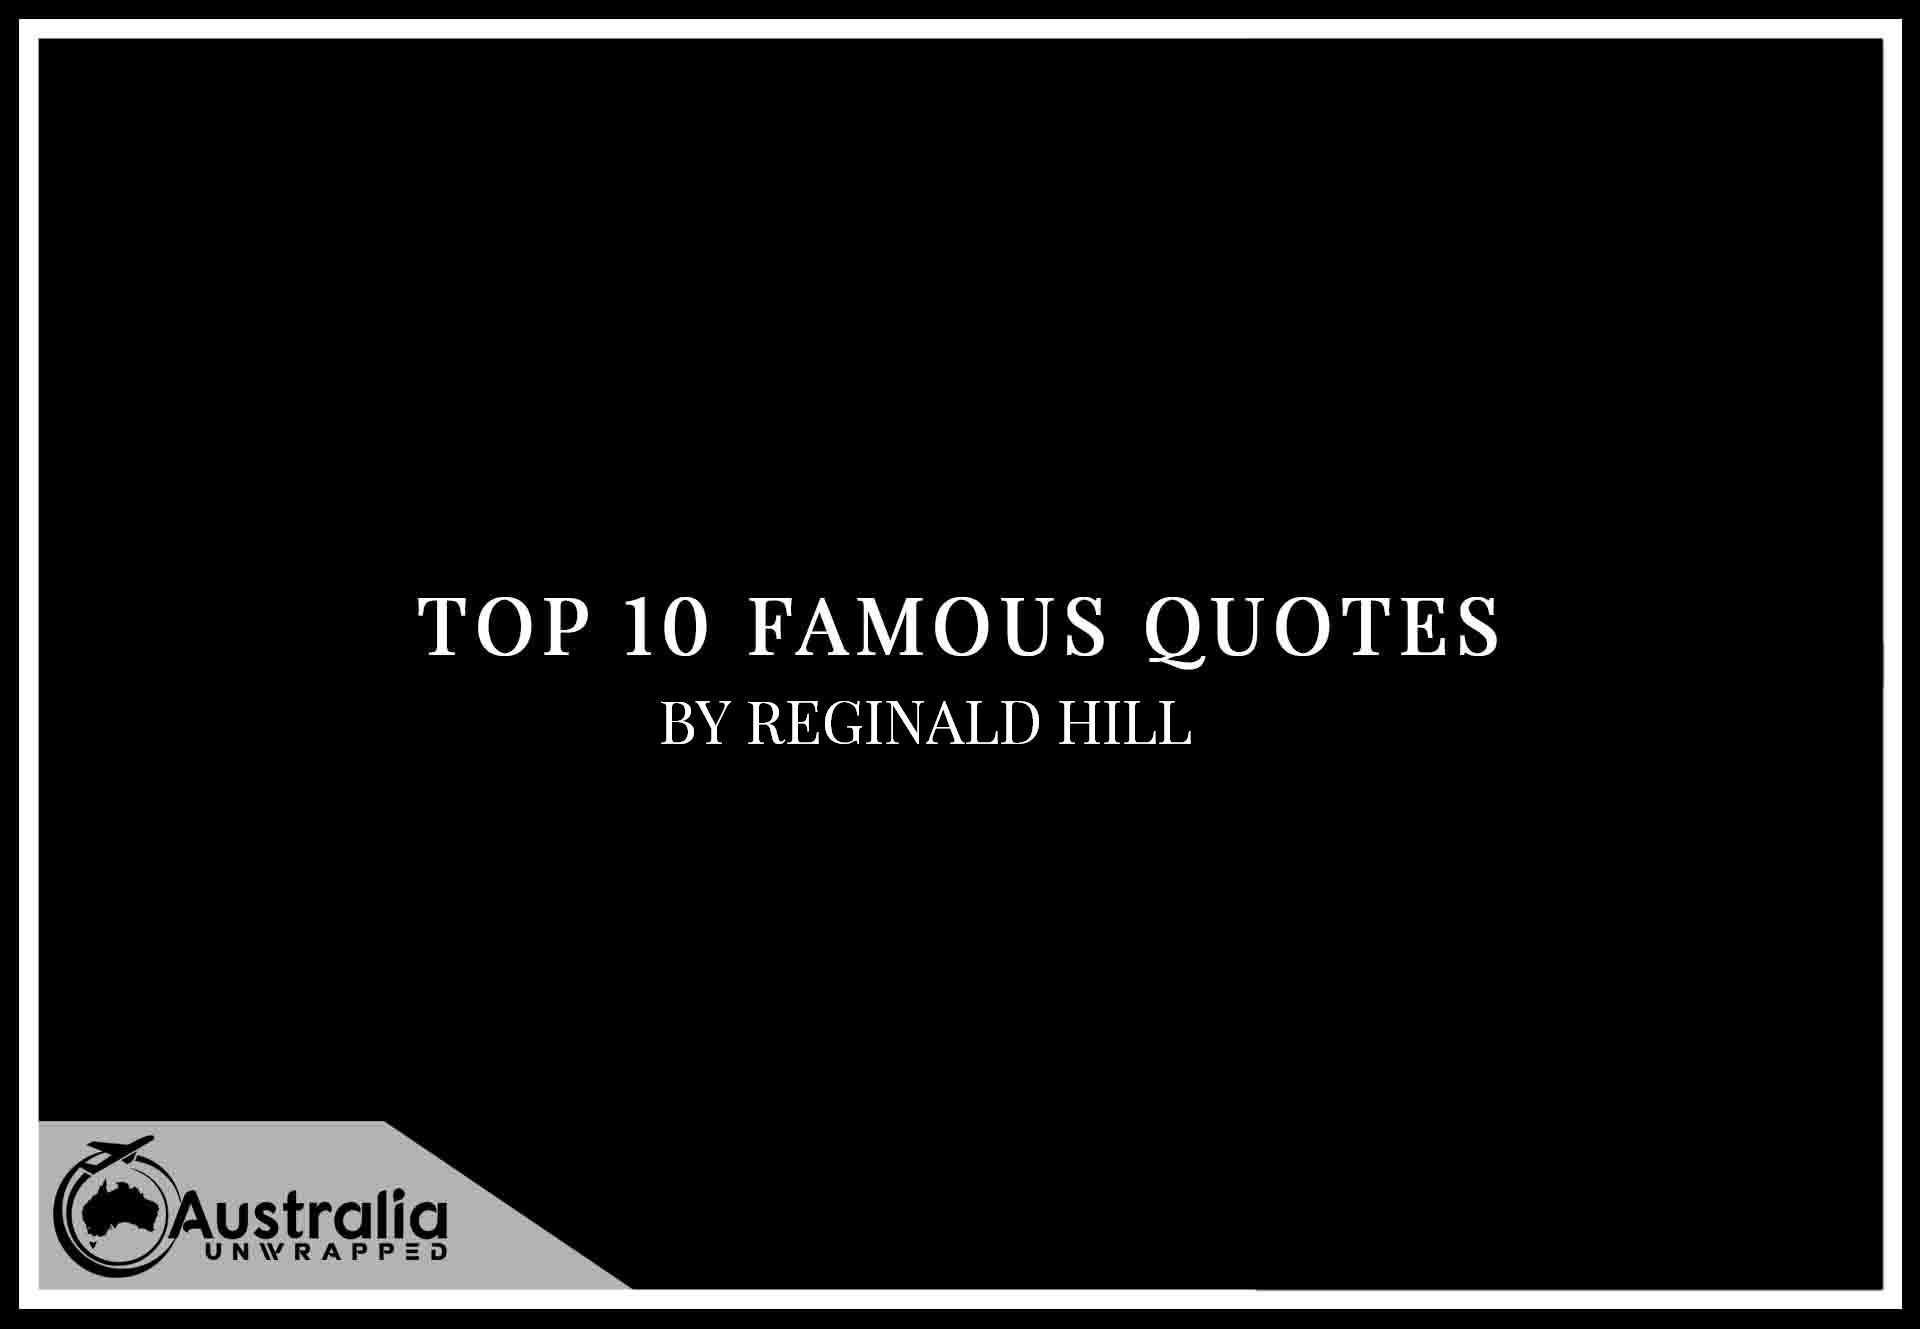 Reginald Hill's Top 10 Popular and Famous Quotes